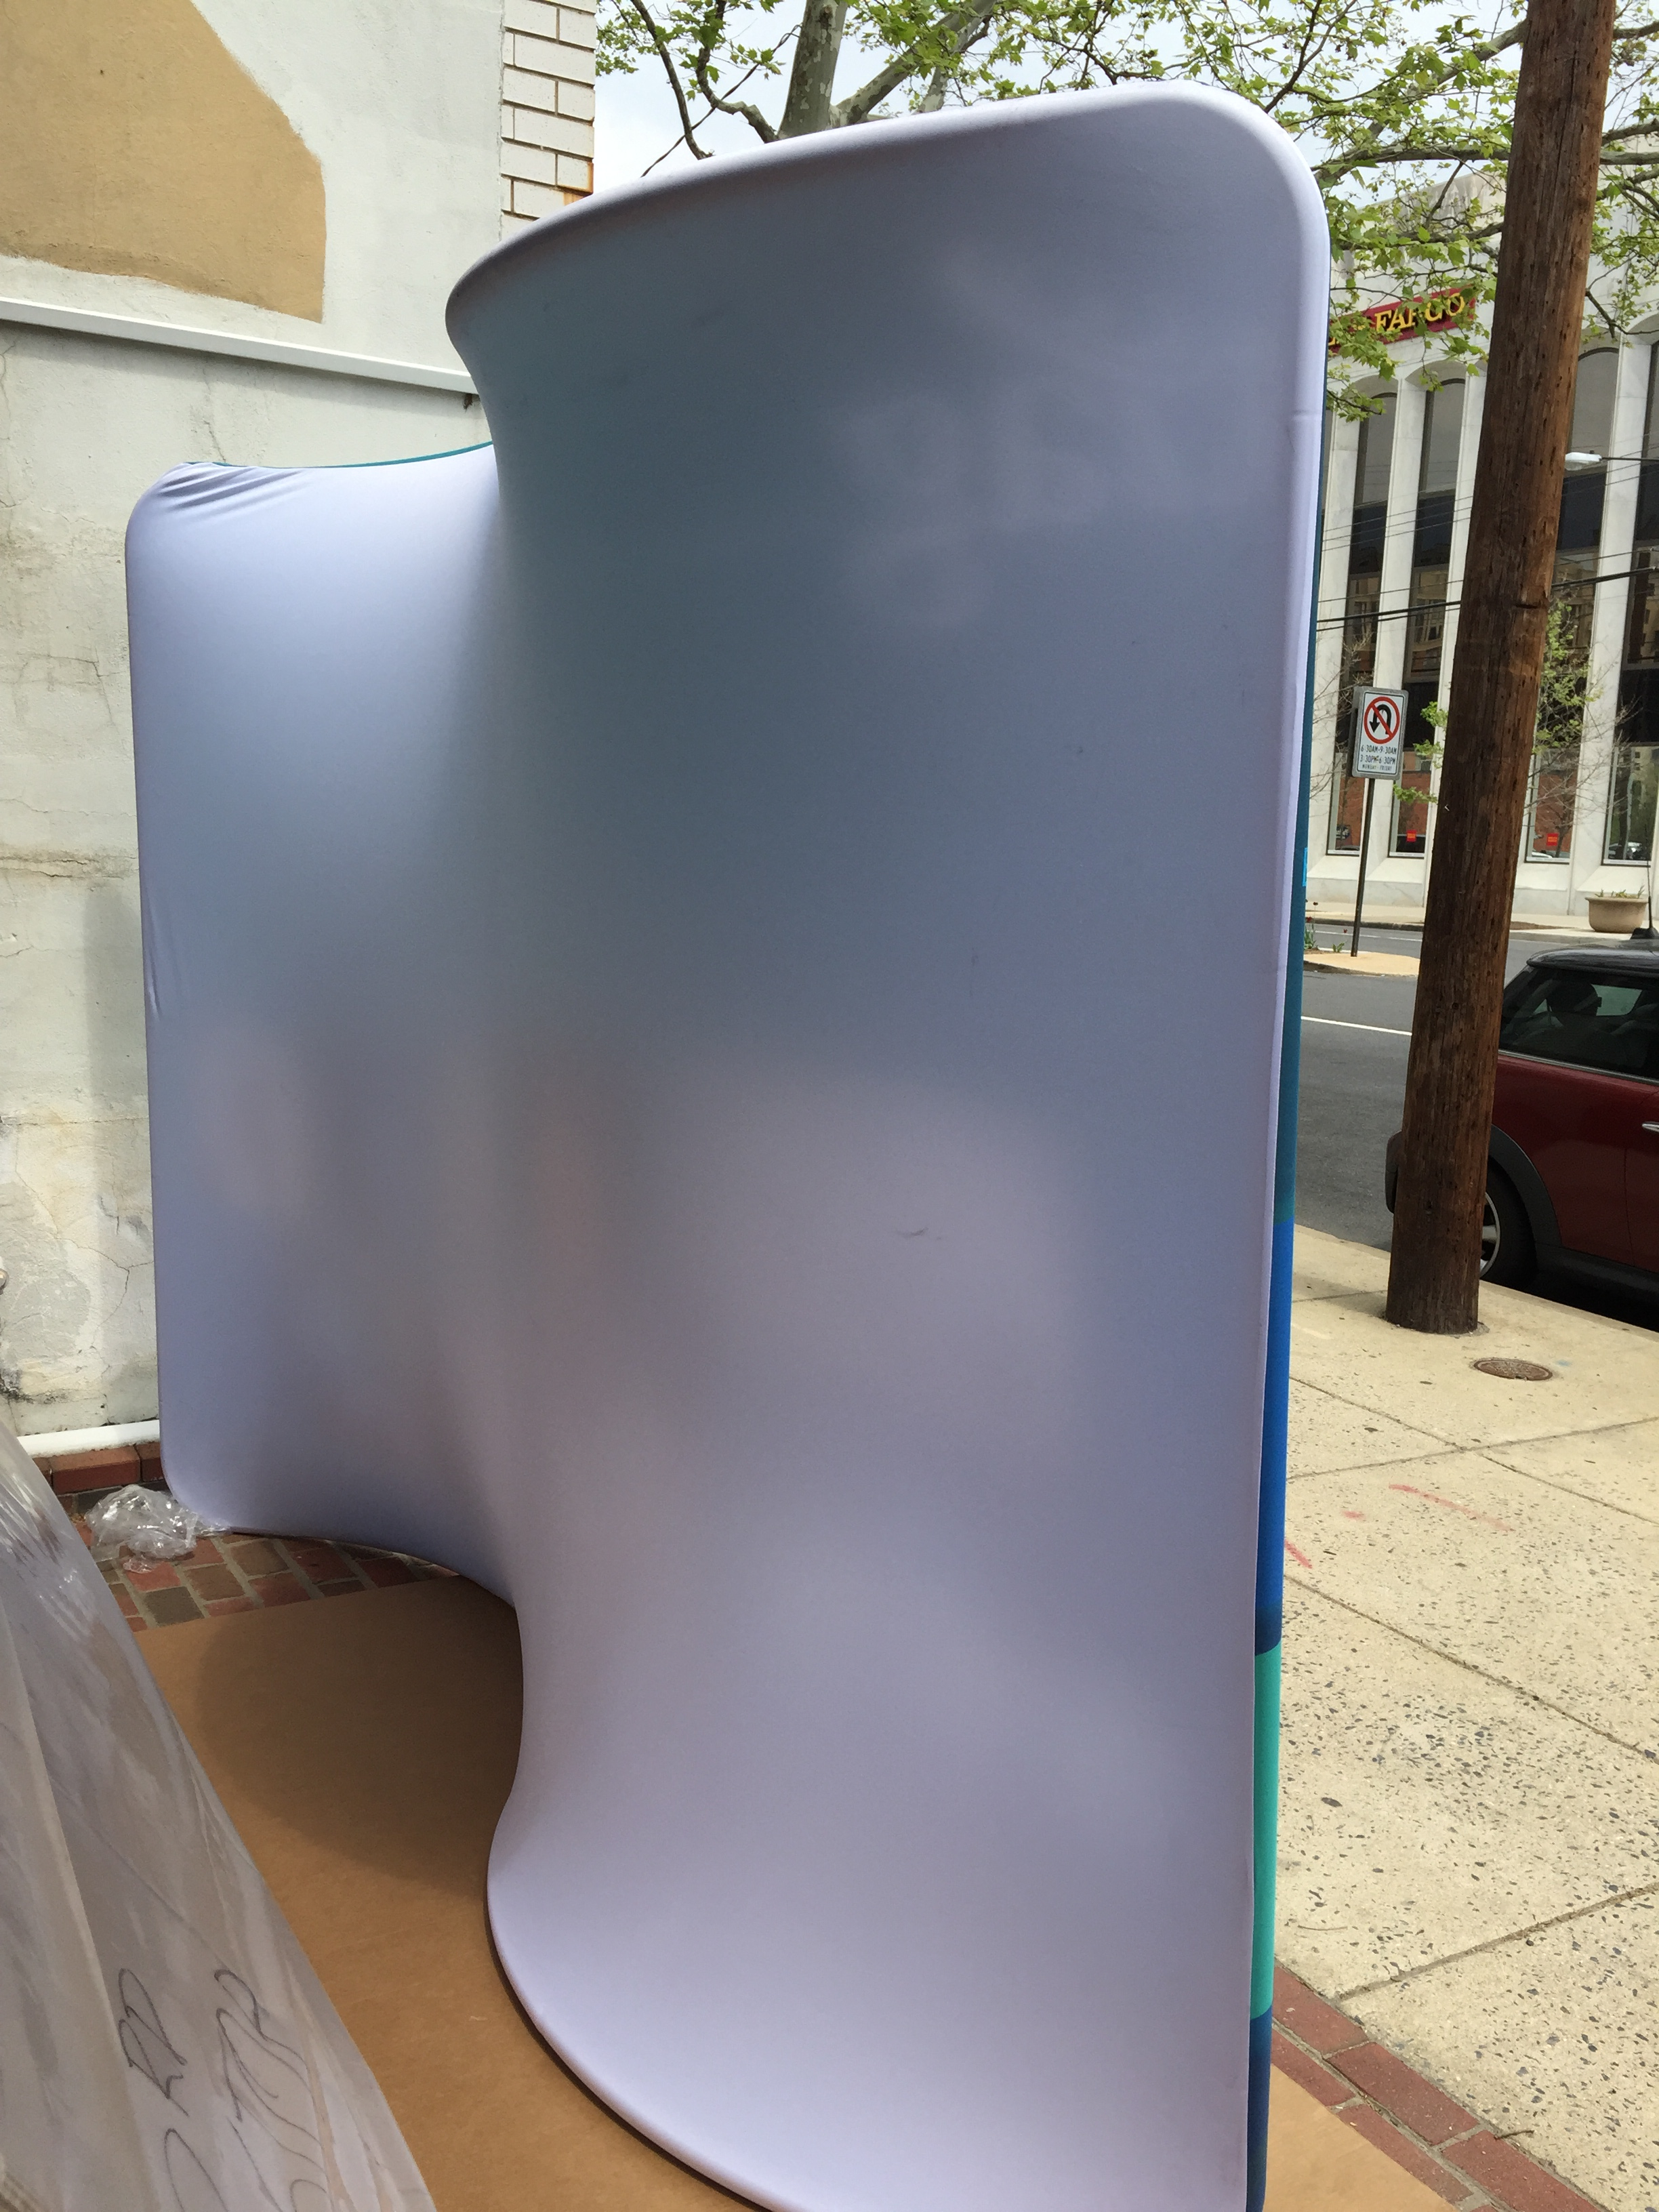 The back can be solid white (pictured), solid black, or we can just make it a double-sided display, with graphics on both sides.